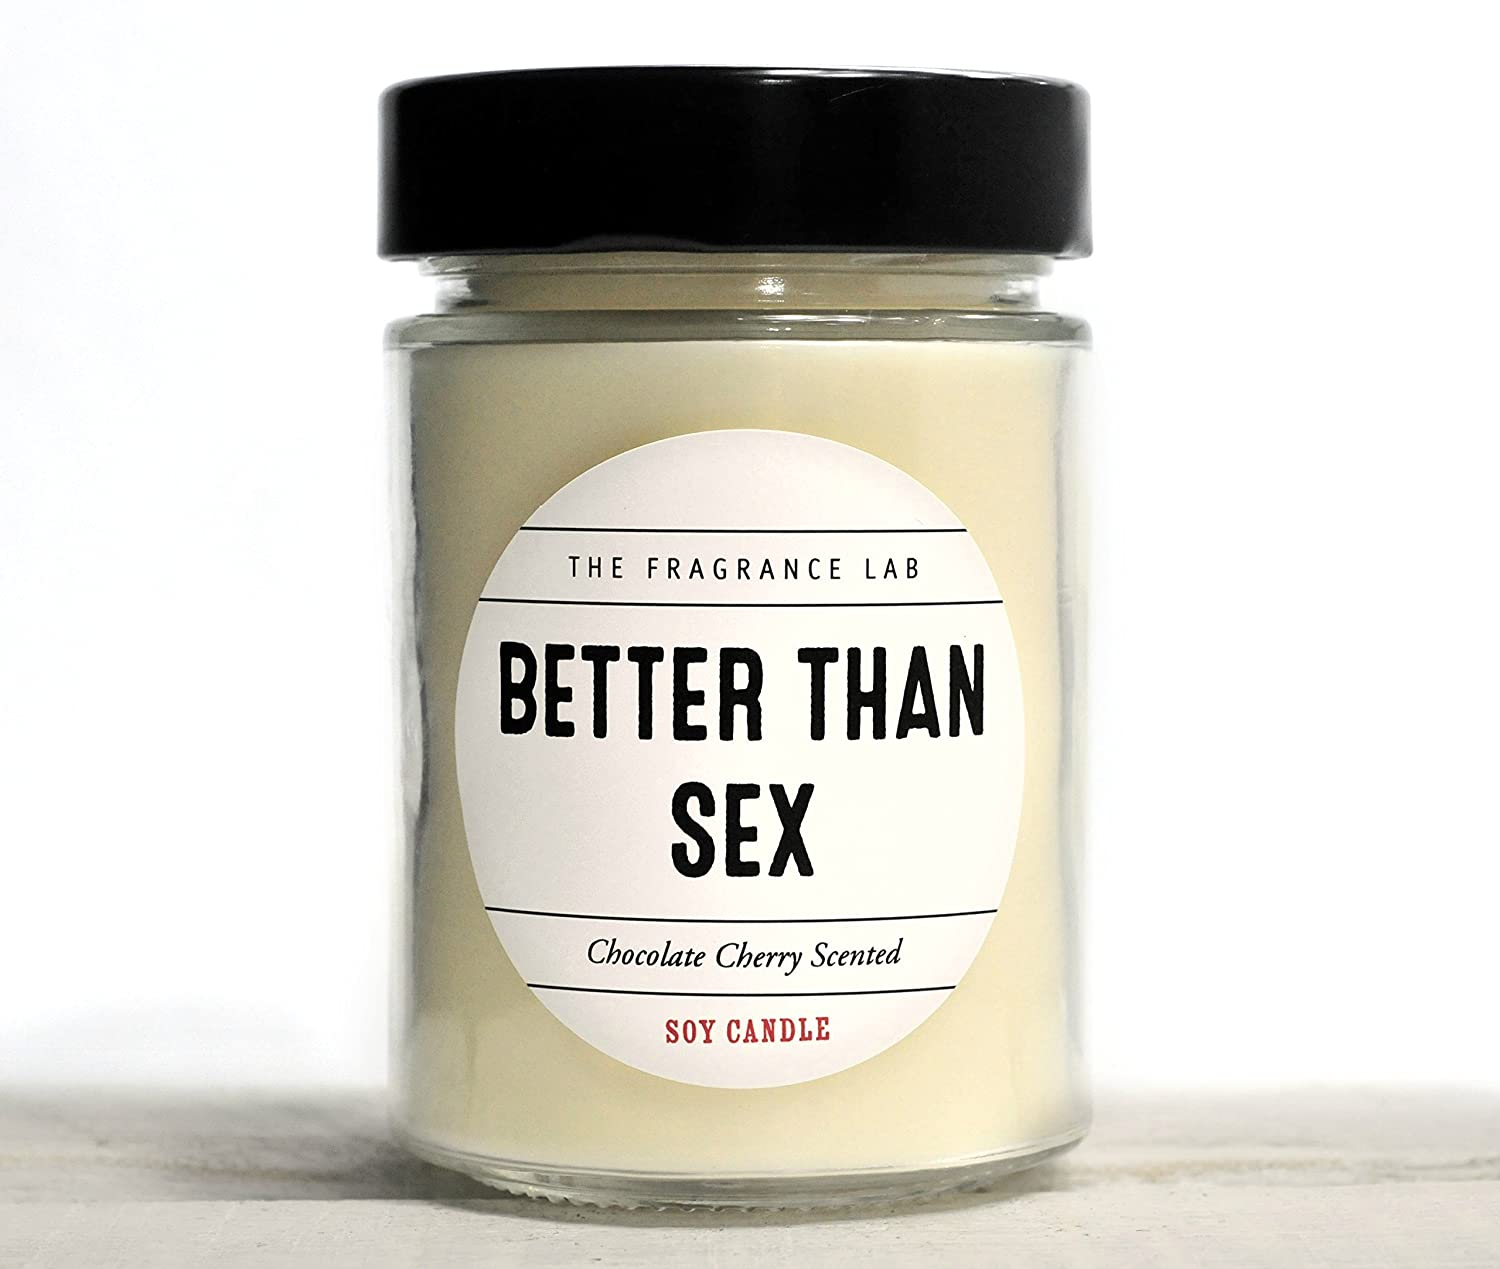 Soy Candle -Better than Sex Chocolate Cherry Scented | The Fragrance Lab